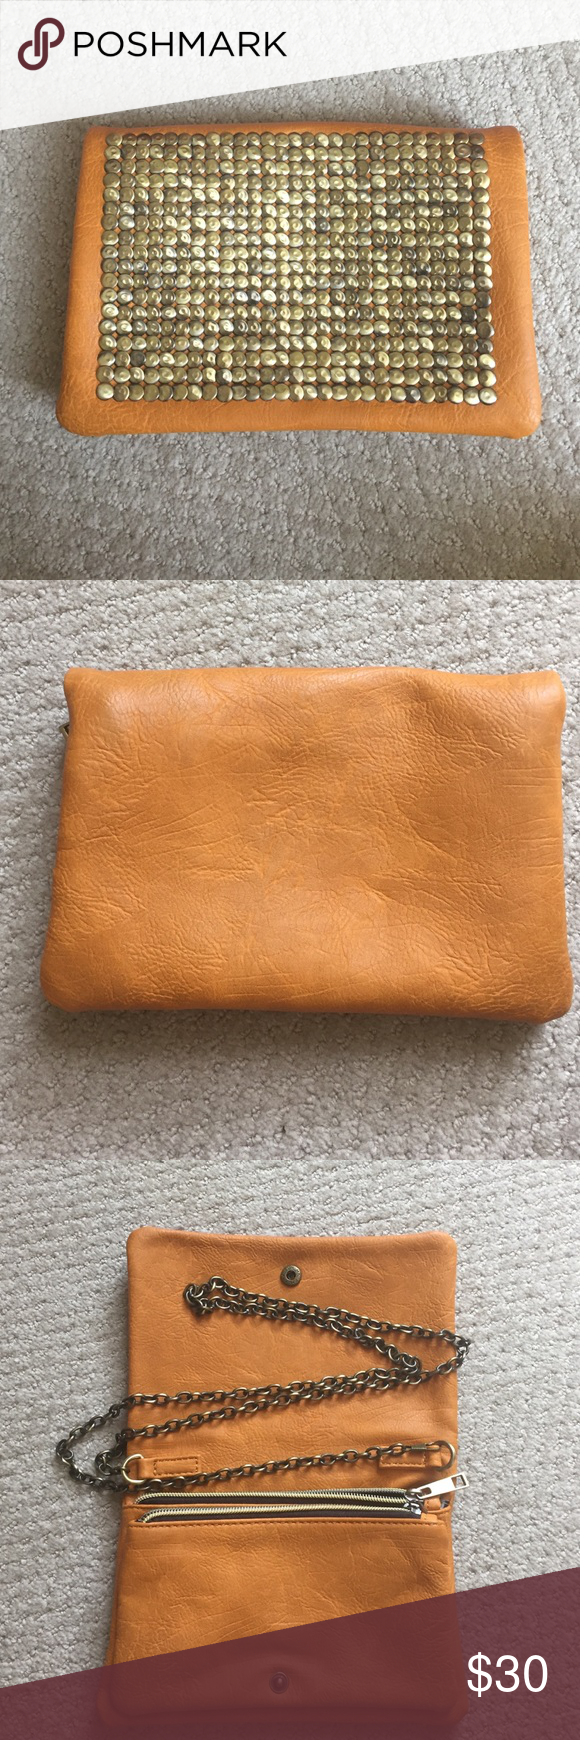 Purse Orange Purse- can either be a clutch or it has a chain. Purchased at Francesca's. Only used once. In great condition. Bags Crossbody Bags